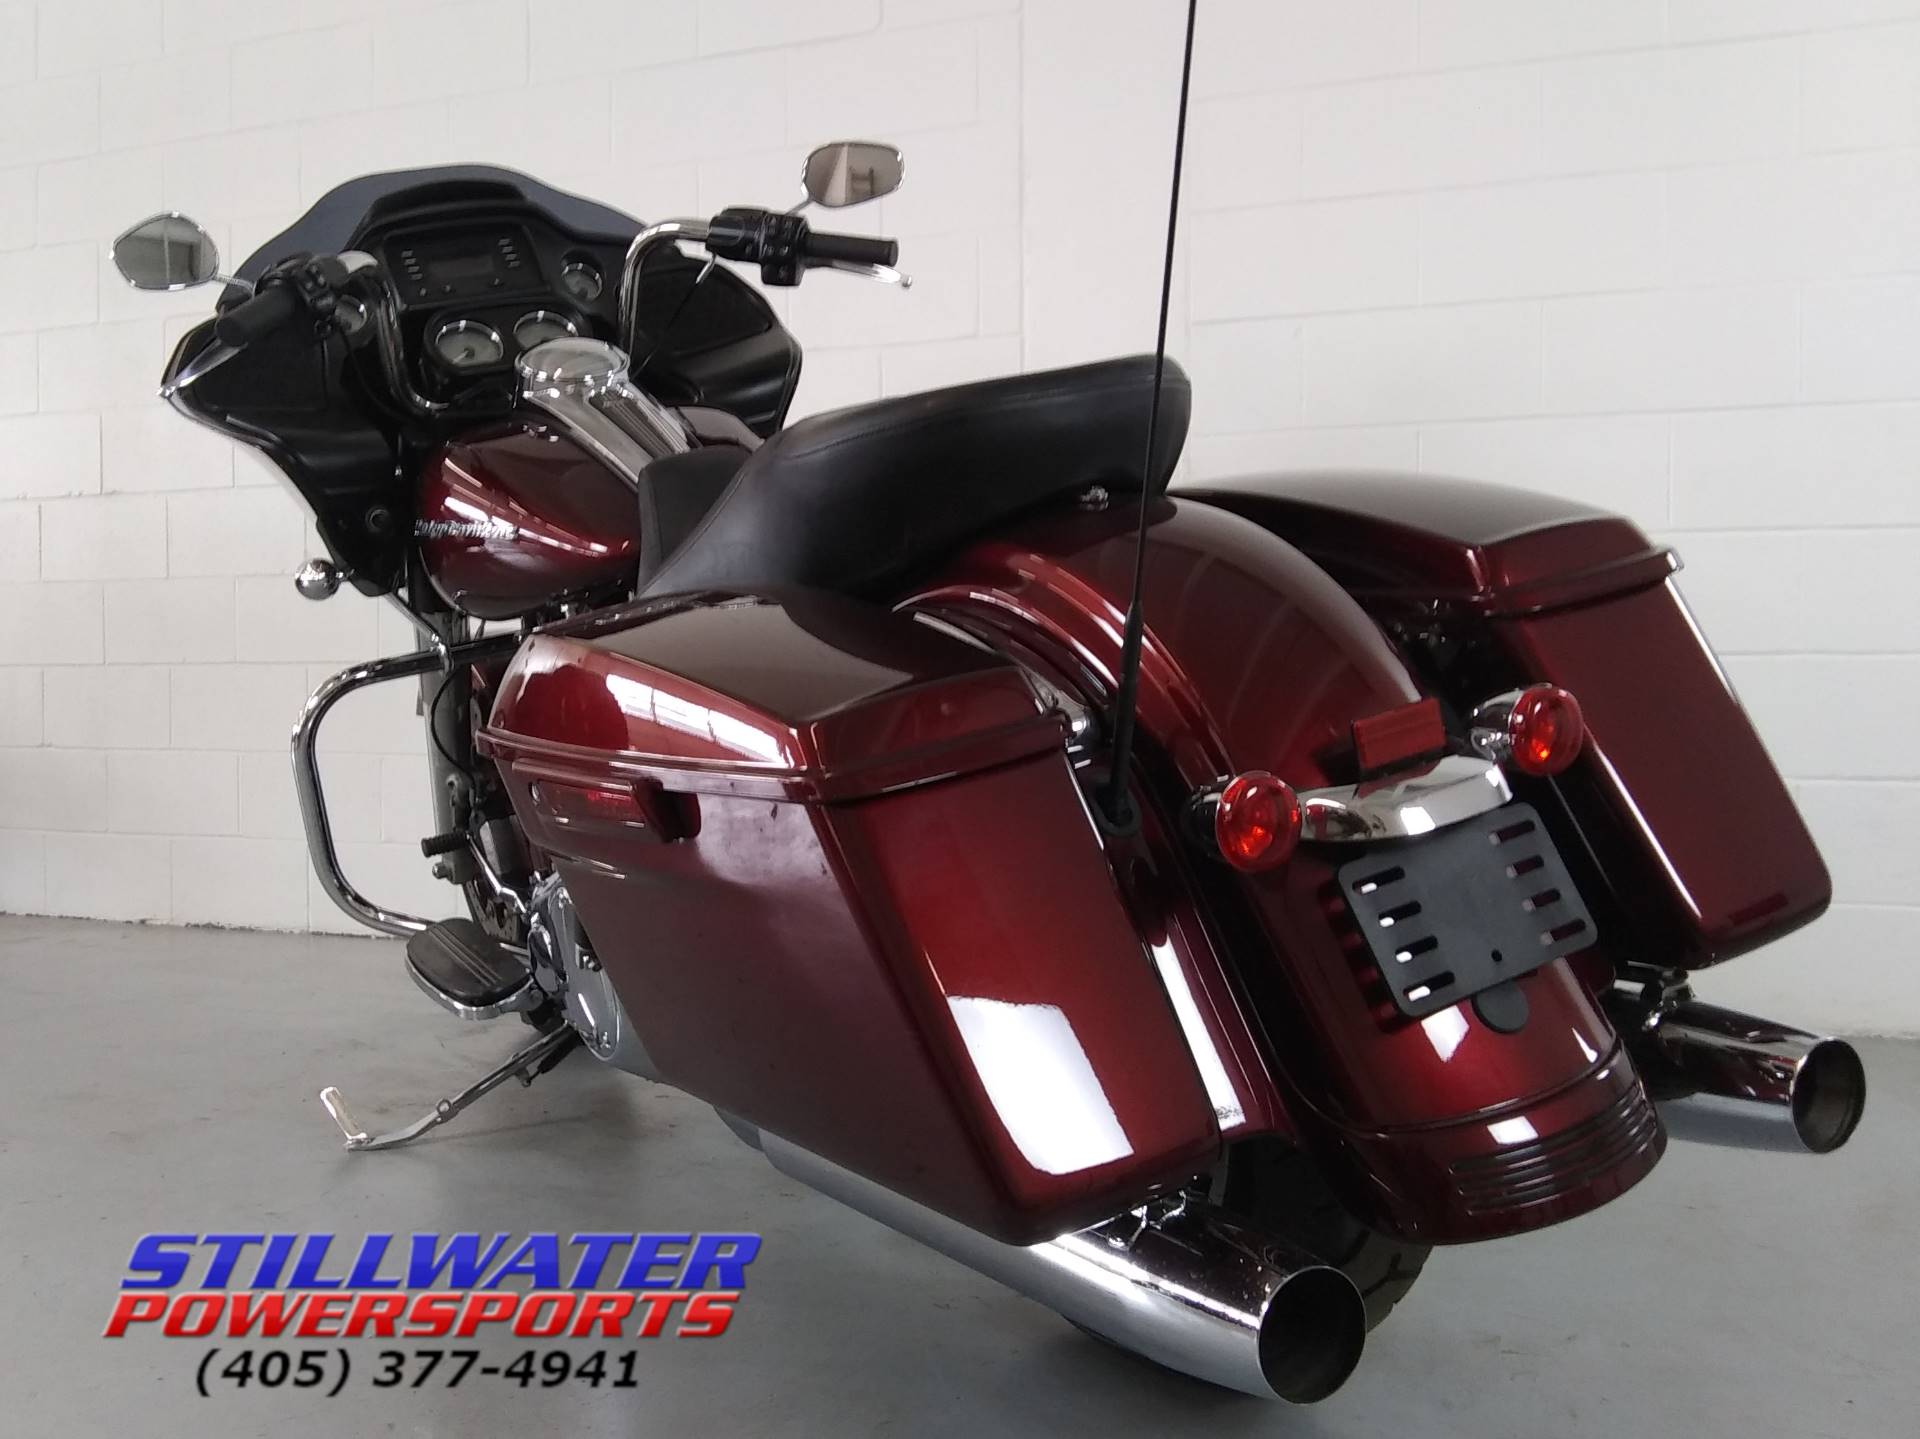 2015 Harley-Davidson Road Glide® in Stillwater, Oklahoma - Photo 13